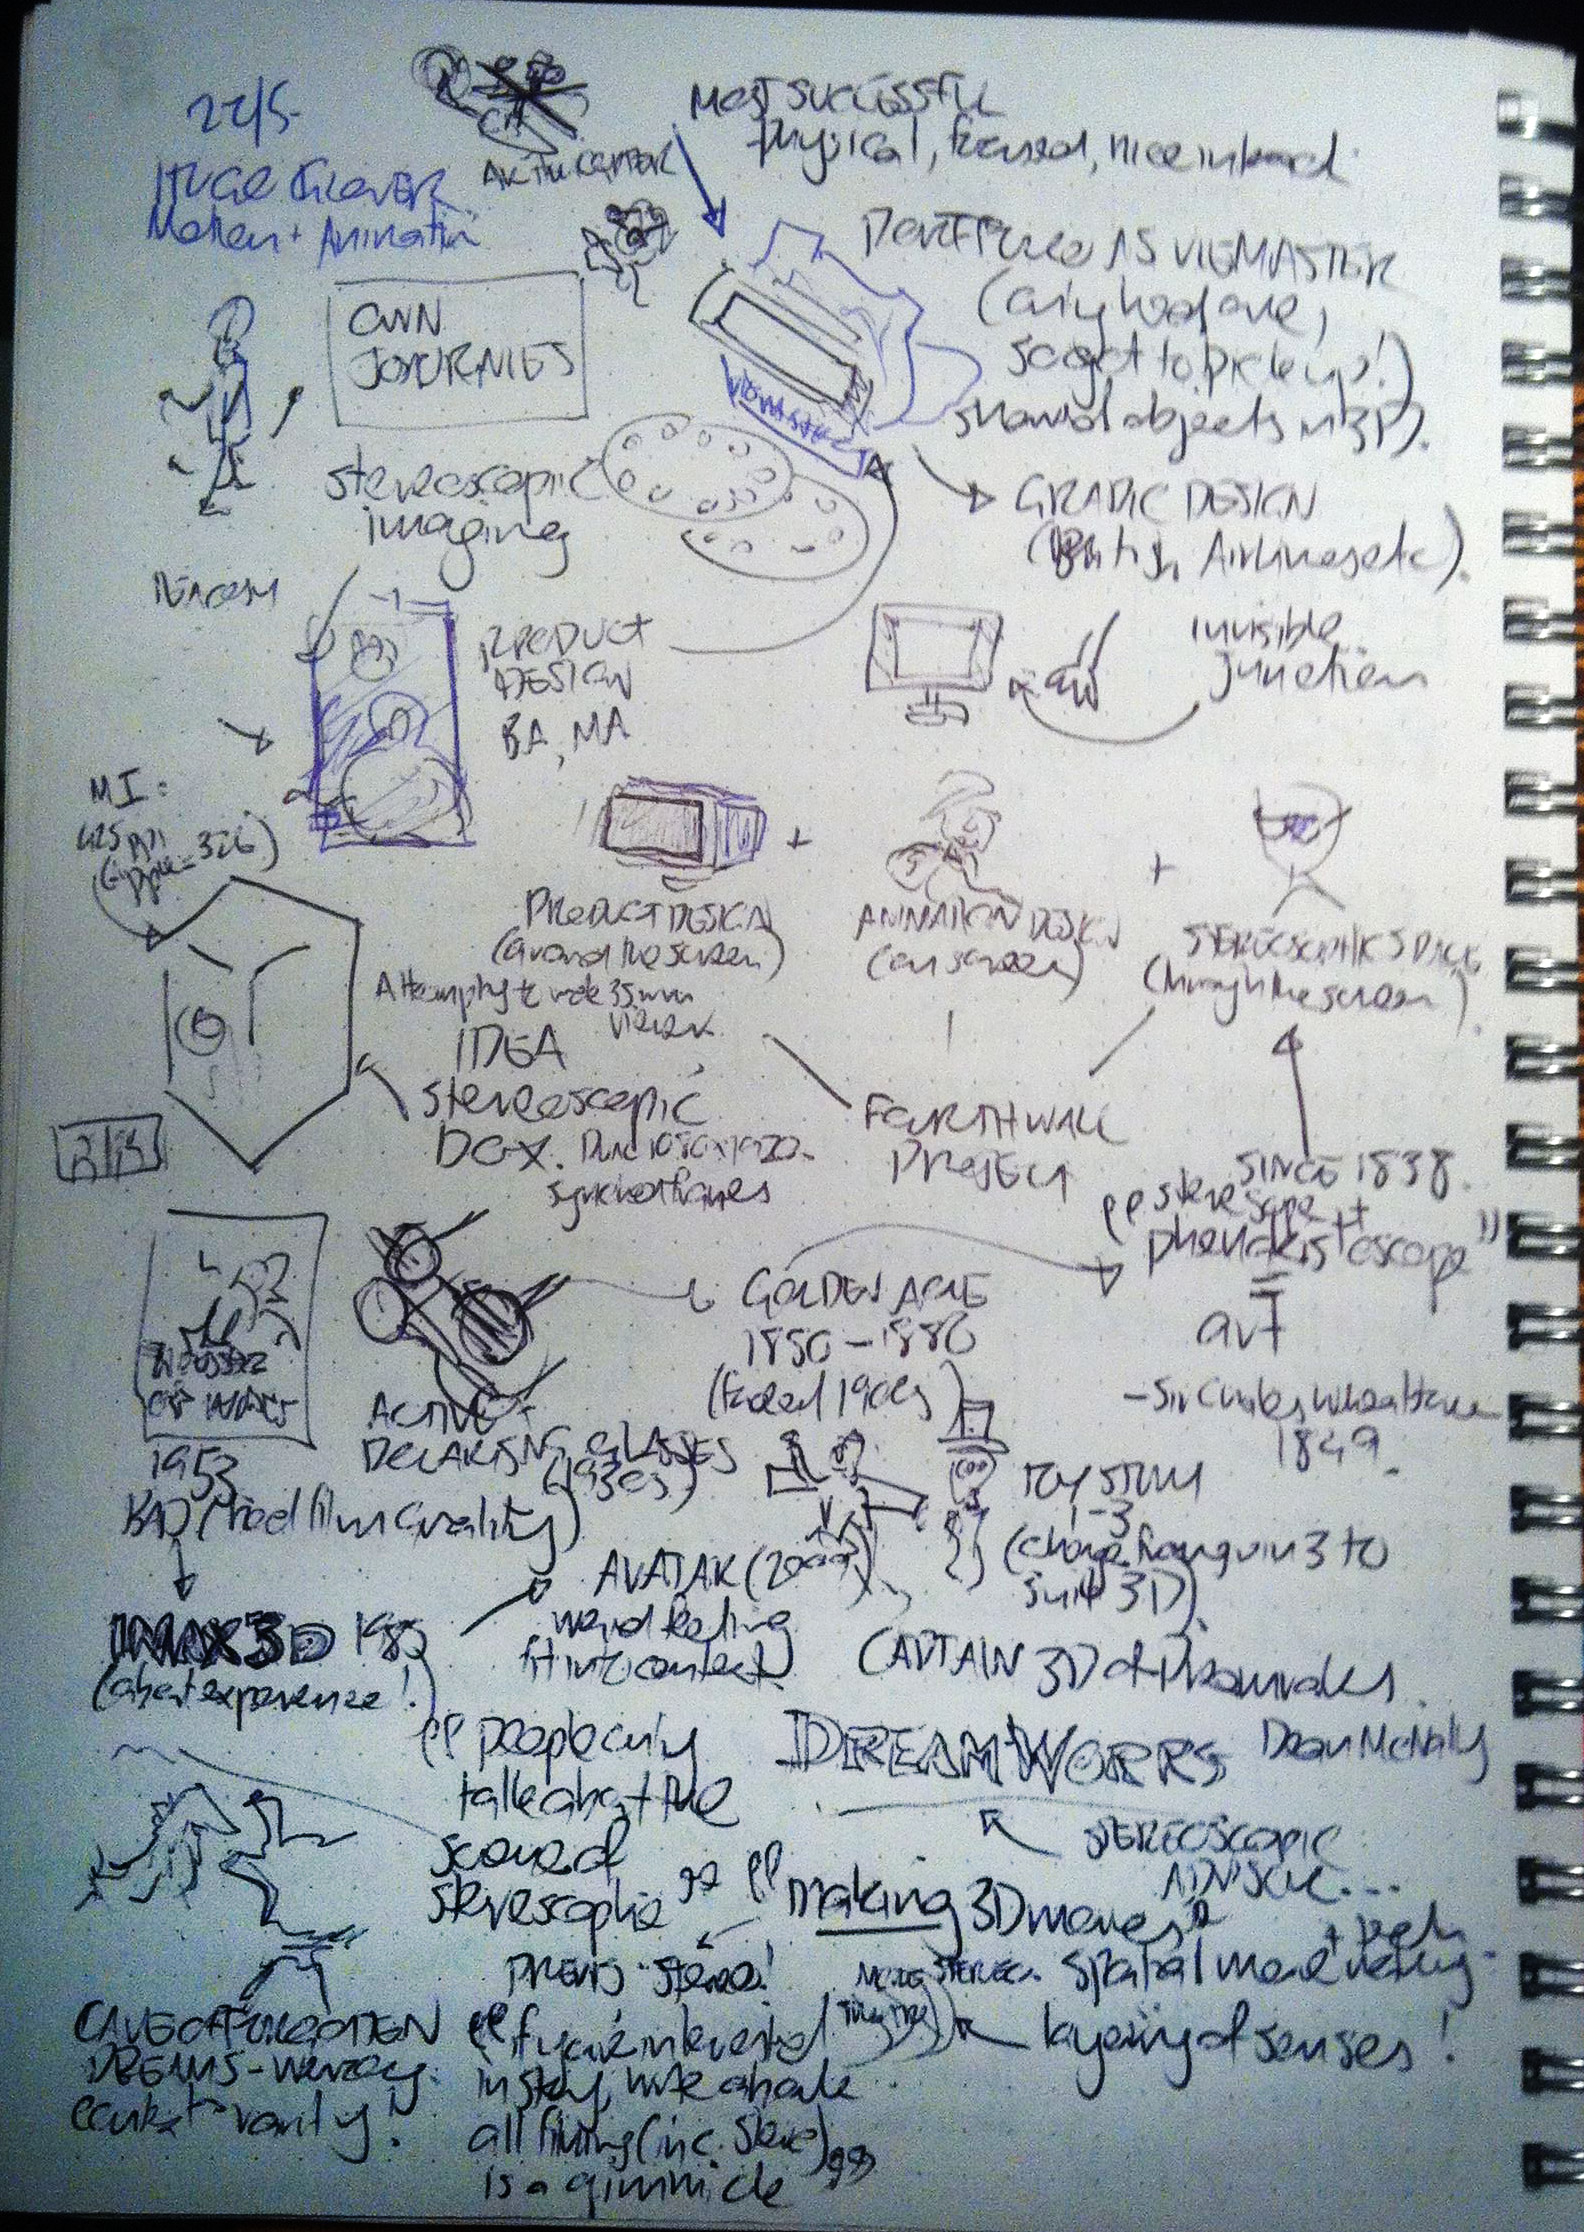 Notes from Hugo's talk